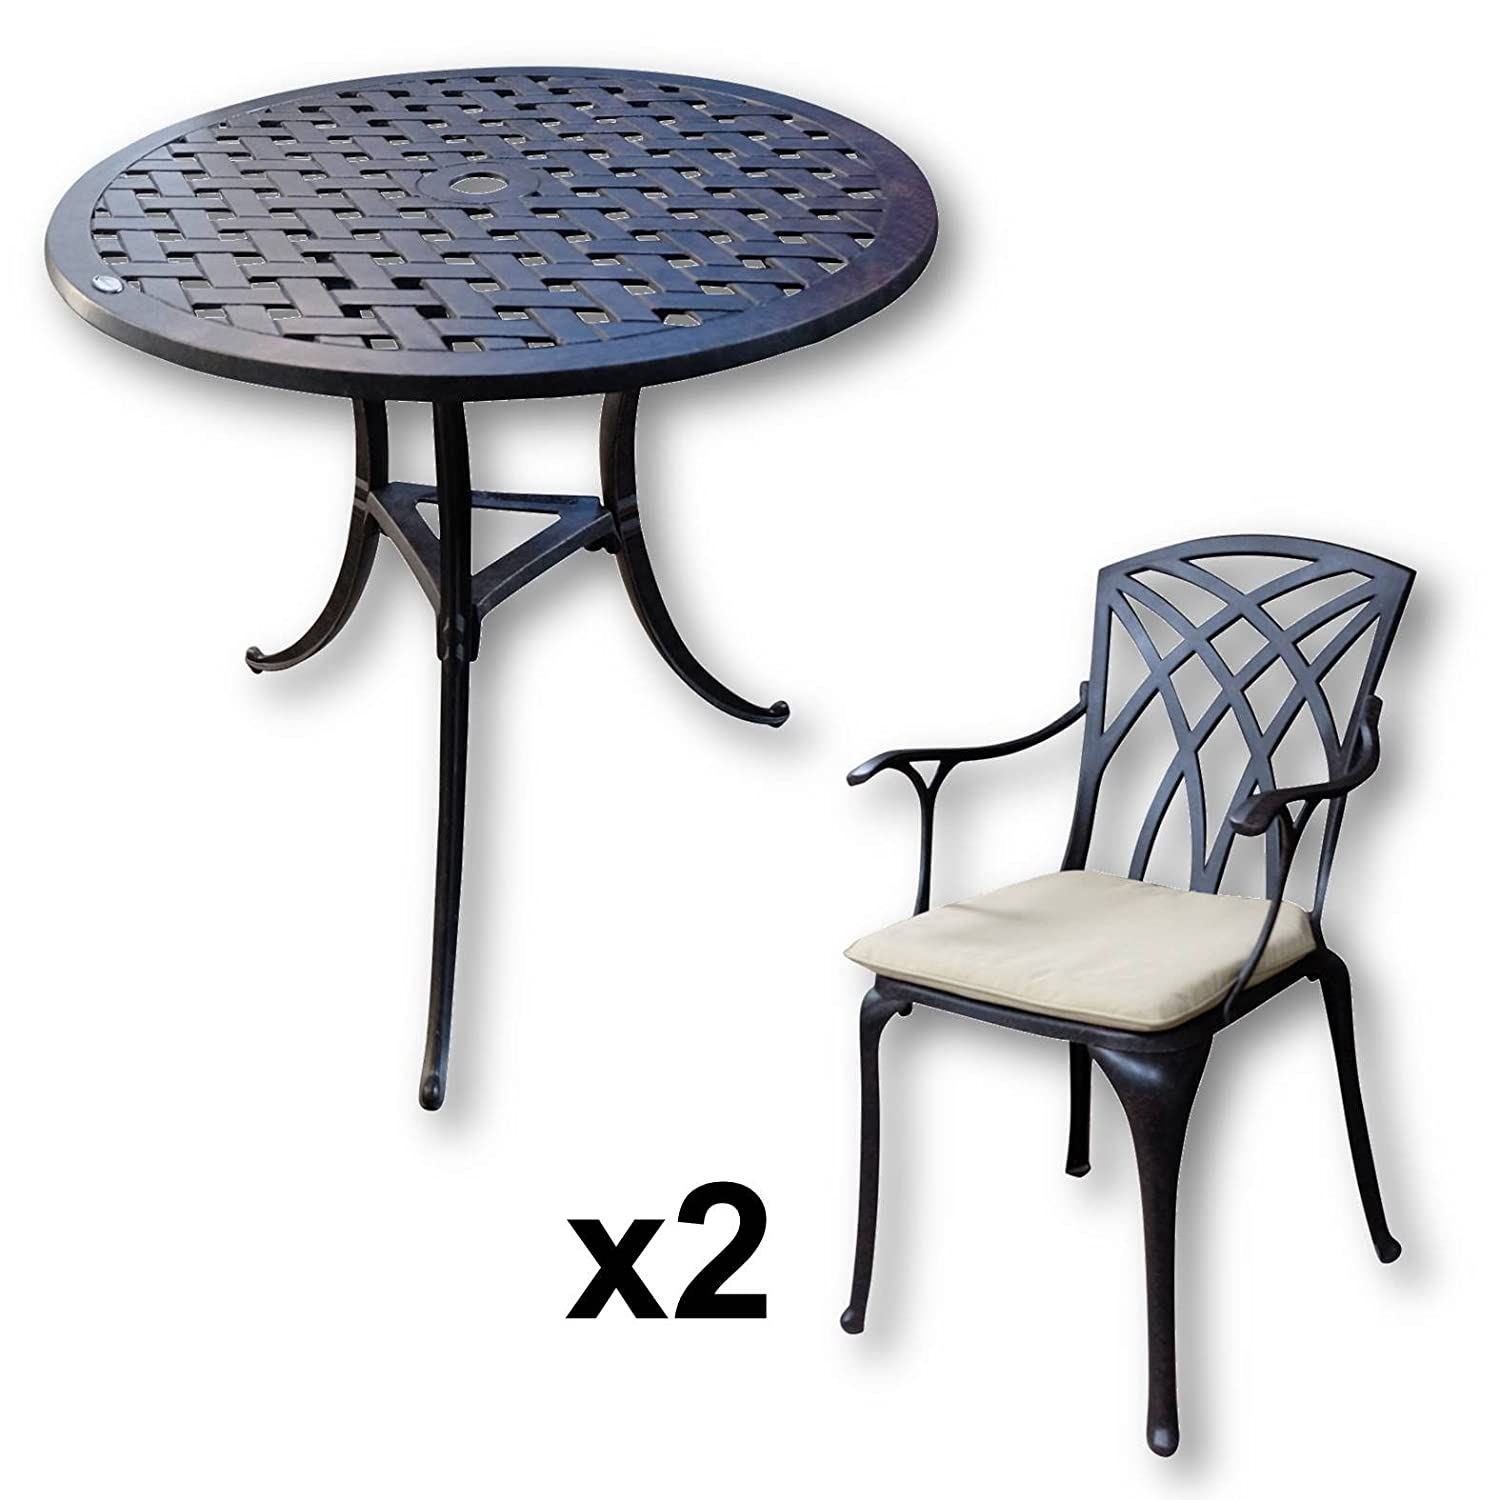 lazy susan betty bistrotisch mit 2 st hlen rundes gartenm bel set aus metall antik bronze. Black Bedroom Furniture Sets. Home Design Ideas